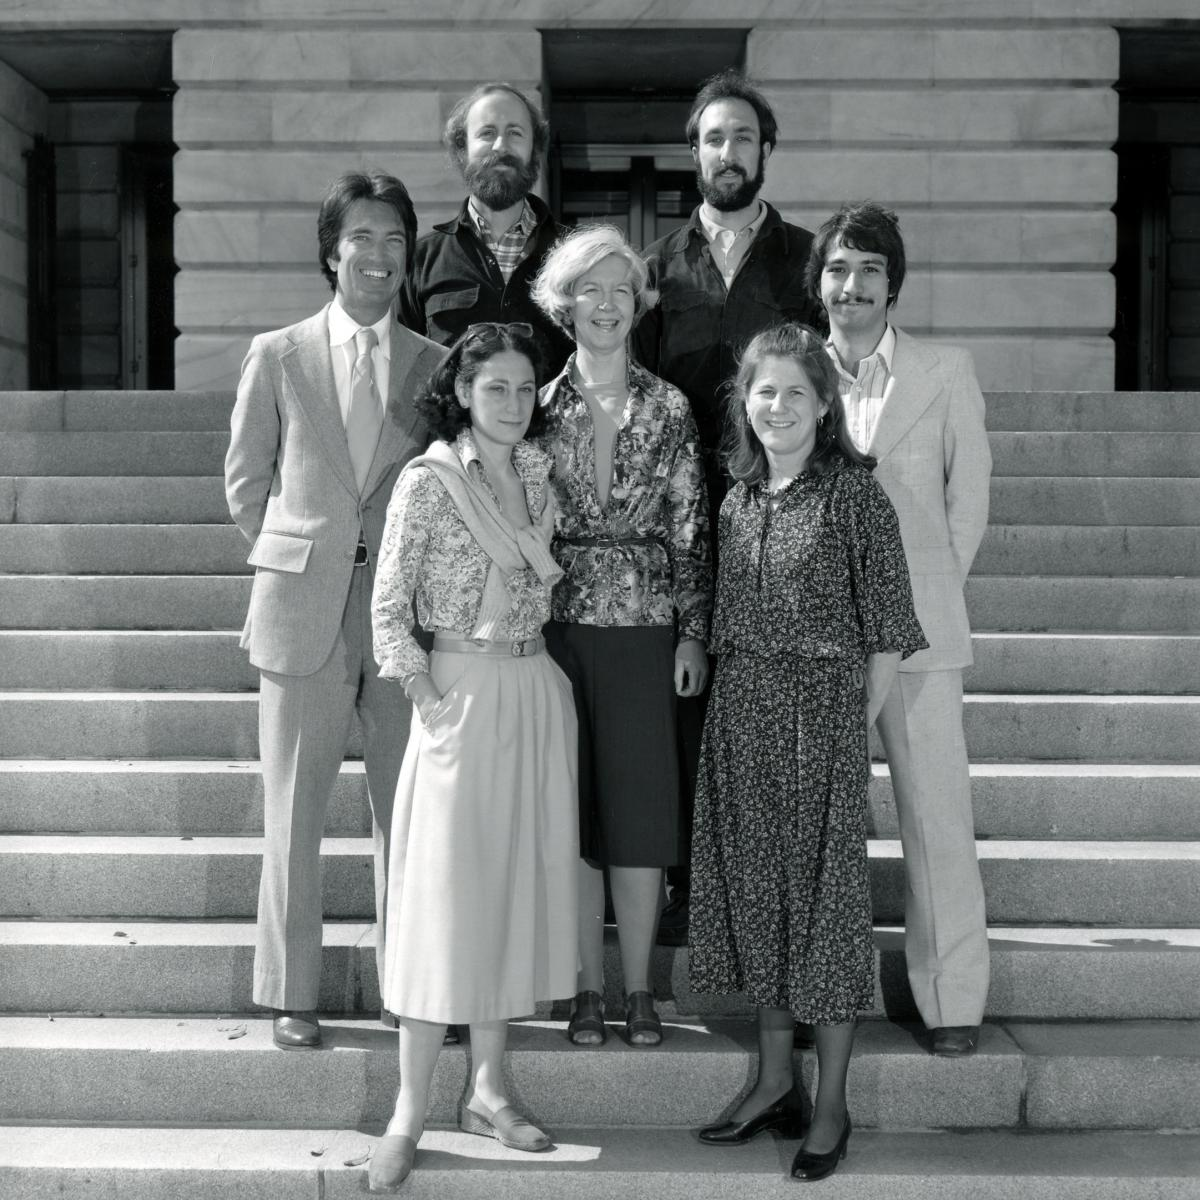 A photograph of seven people standing on stairs outside the Smithsonian American Art Museum.